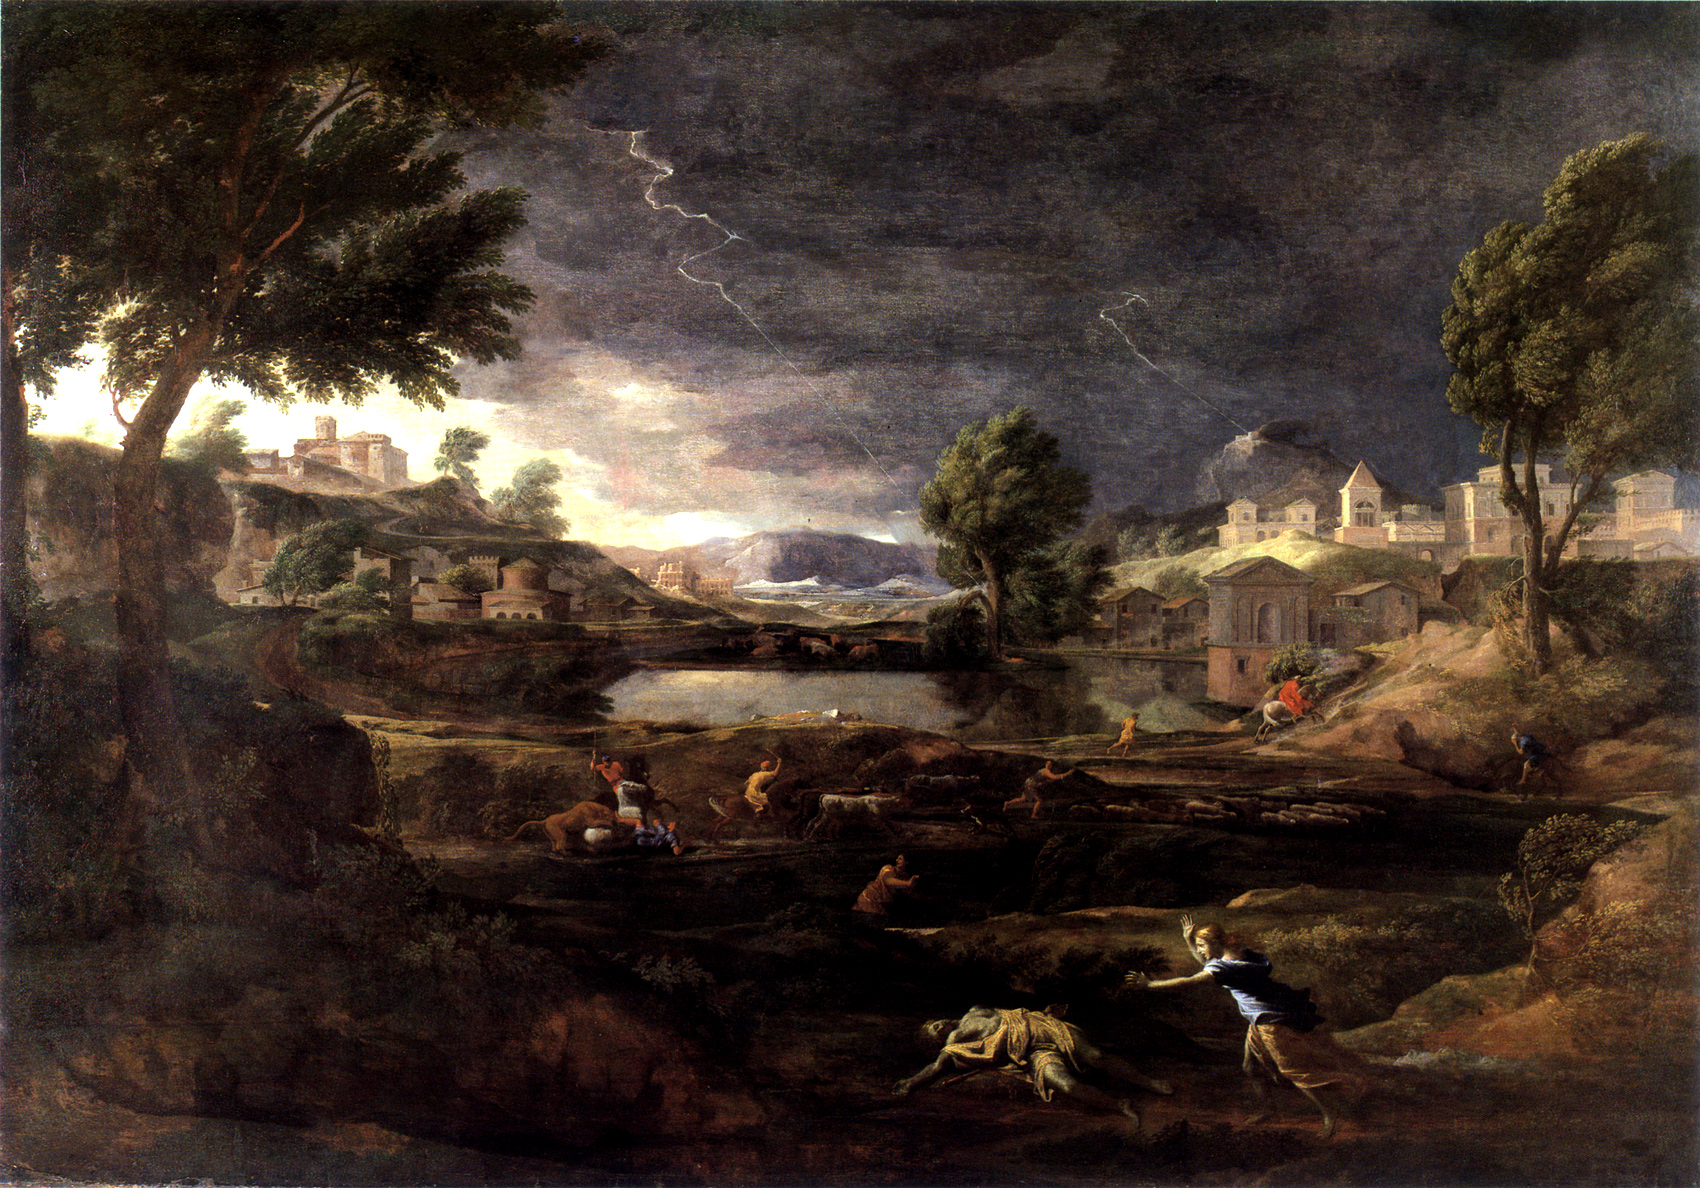 http://uploads7.wikipaintings.org/images/nicolas-poussin/stormy-landscape-with-pyramus-and-thisbe-1651(1).jpg